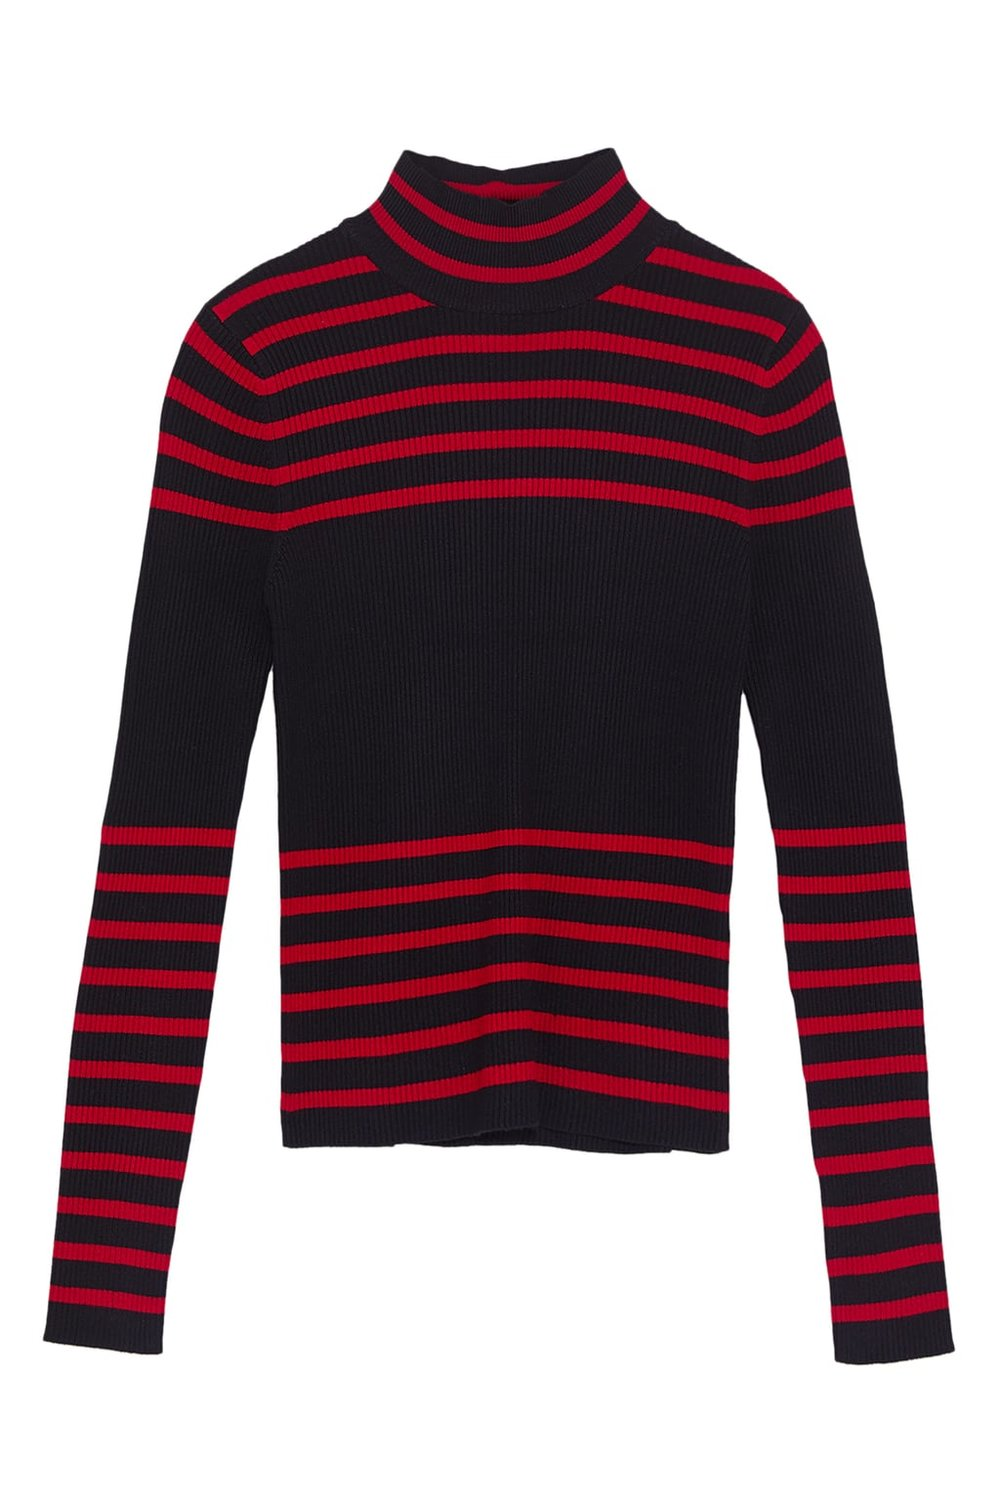 - Knit sweater with high collar and long sleeves. Contrasting stripes. $35